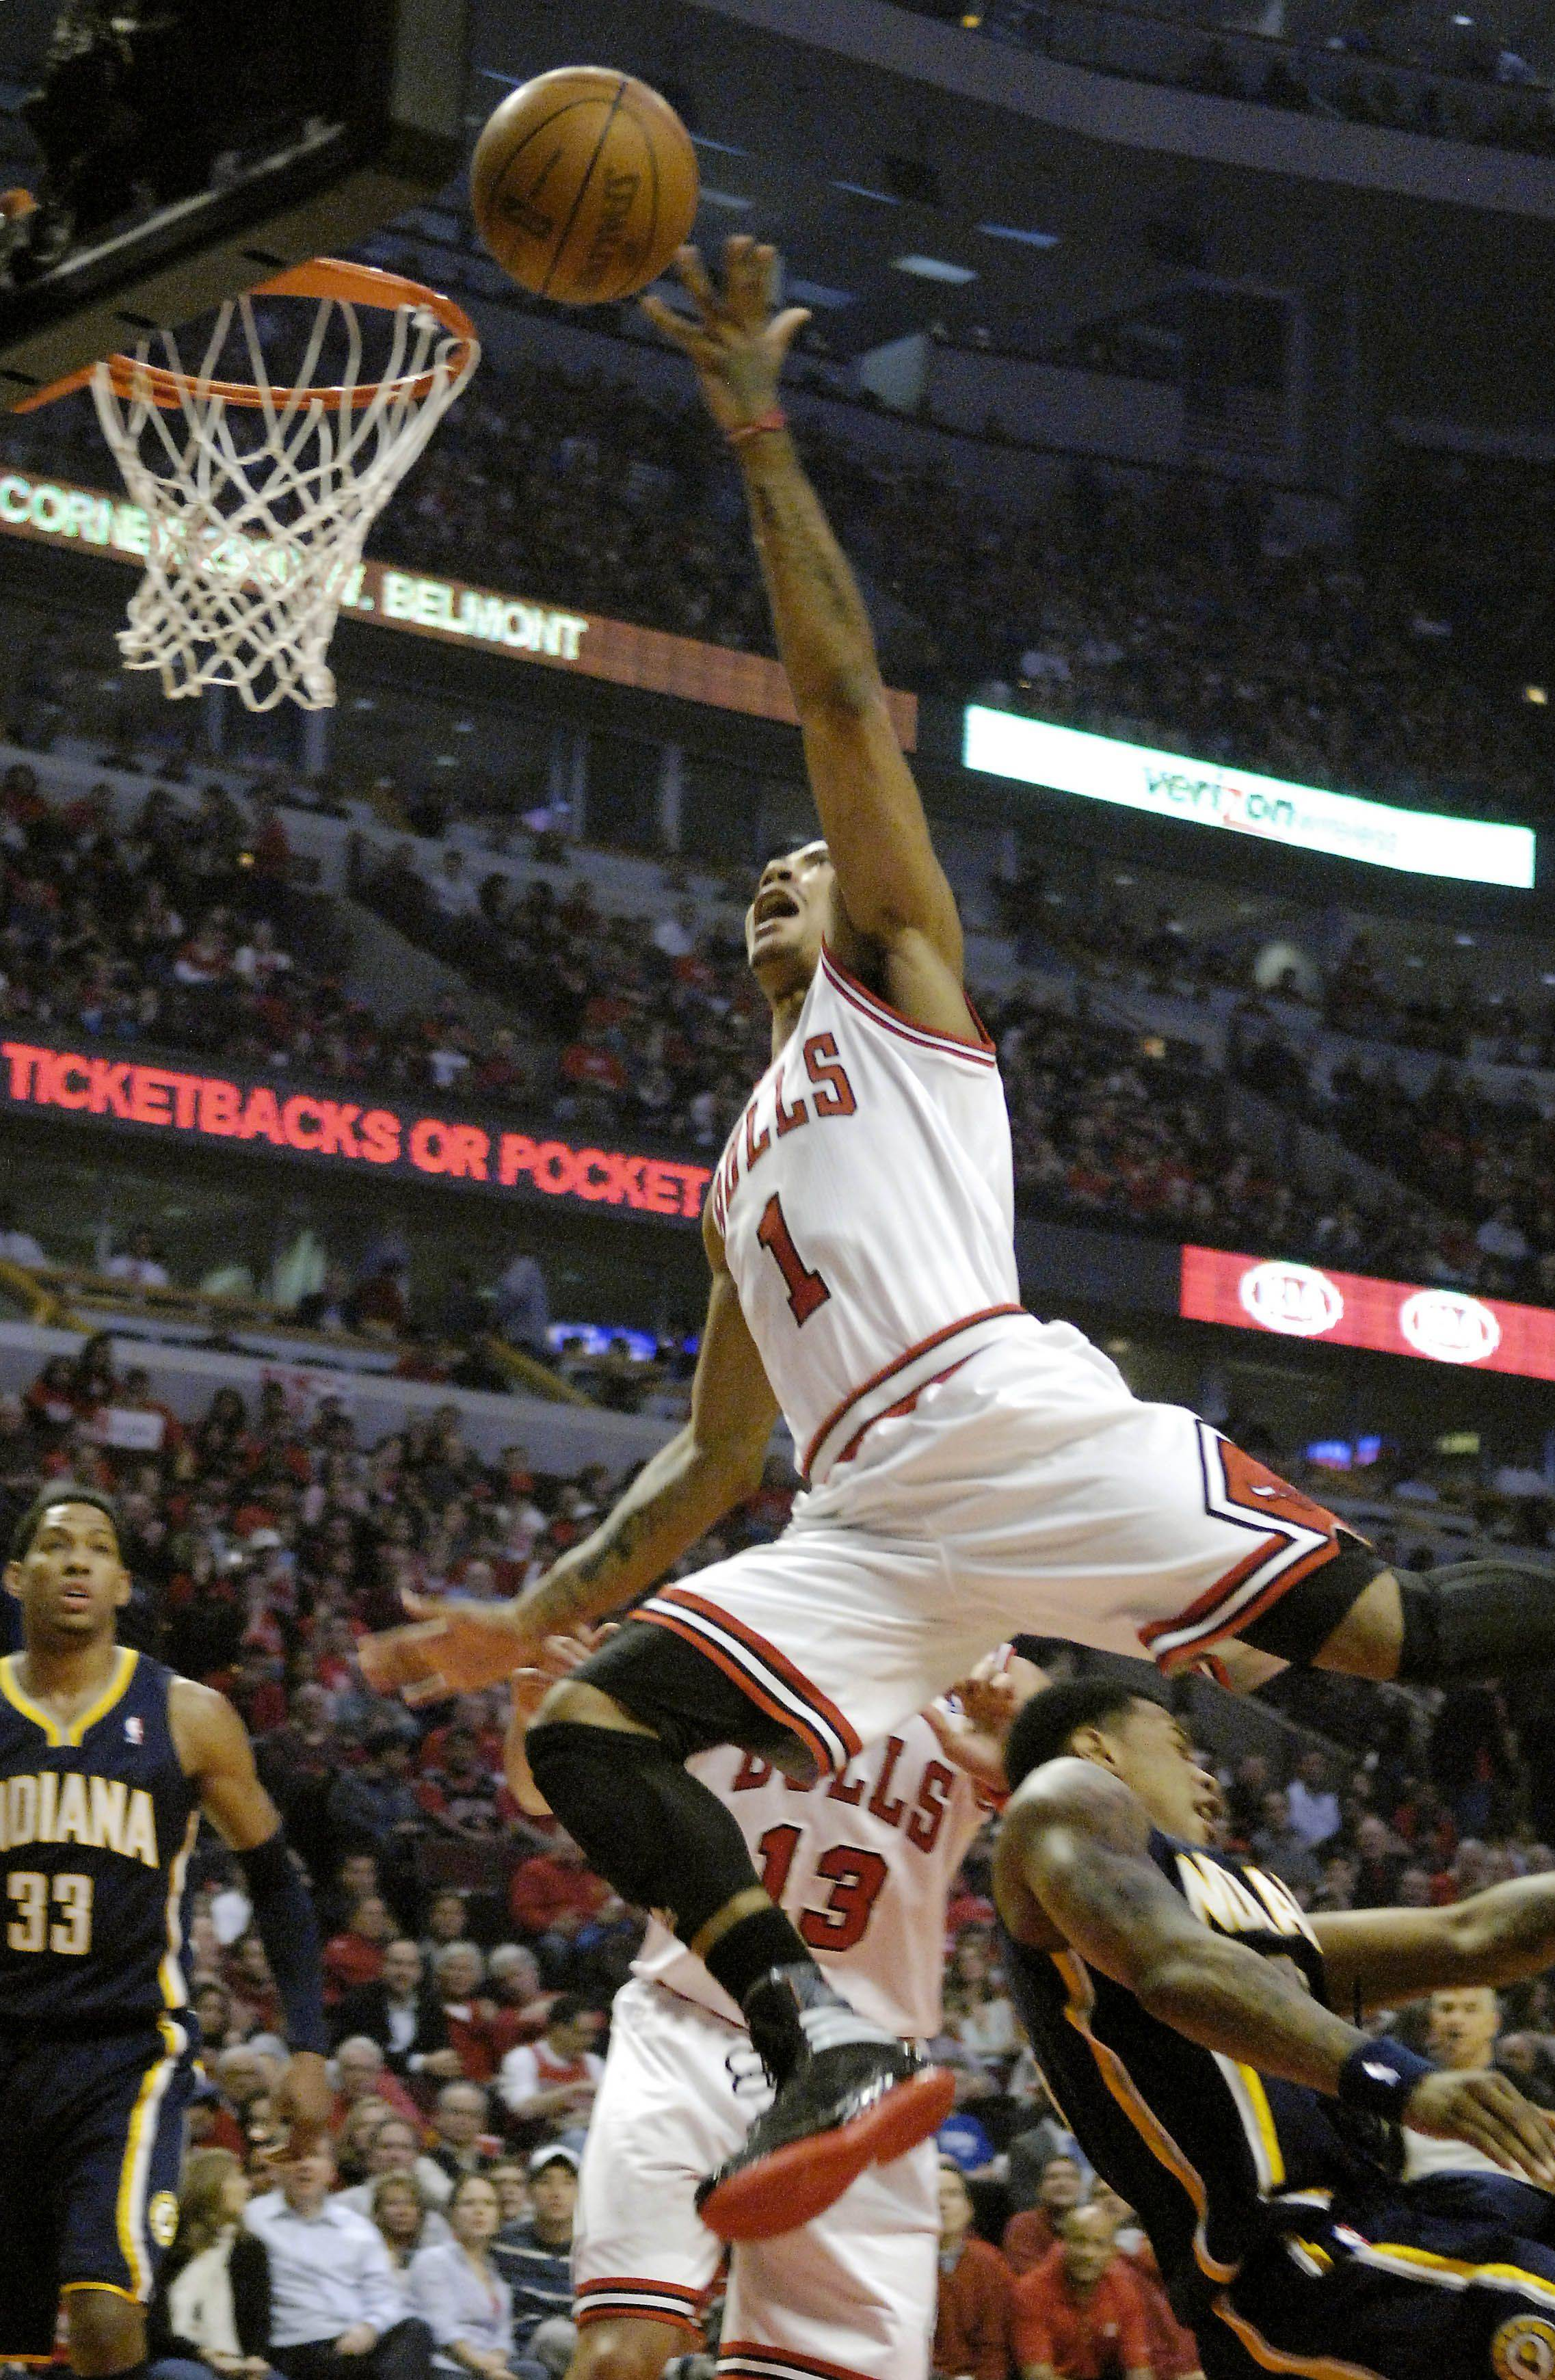 Chicago Bulls point guard Derrick Rose (1) gets upended as he drives and scores in the first quarter during Game One of the NBA Eastern Conference Quarterfinals Saturday at the United Center in Chicago.